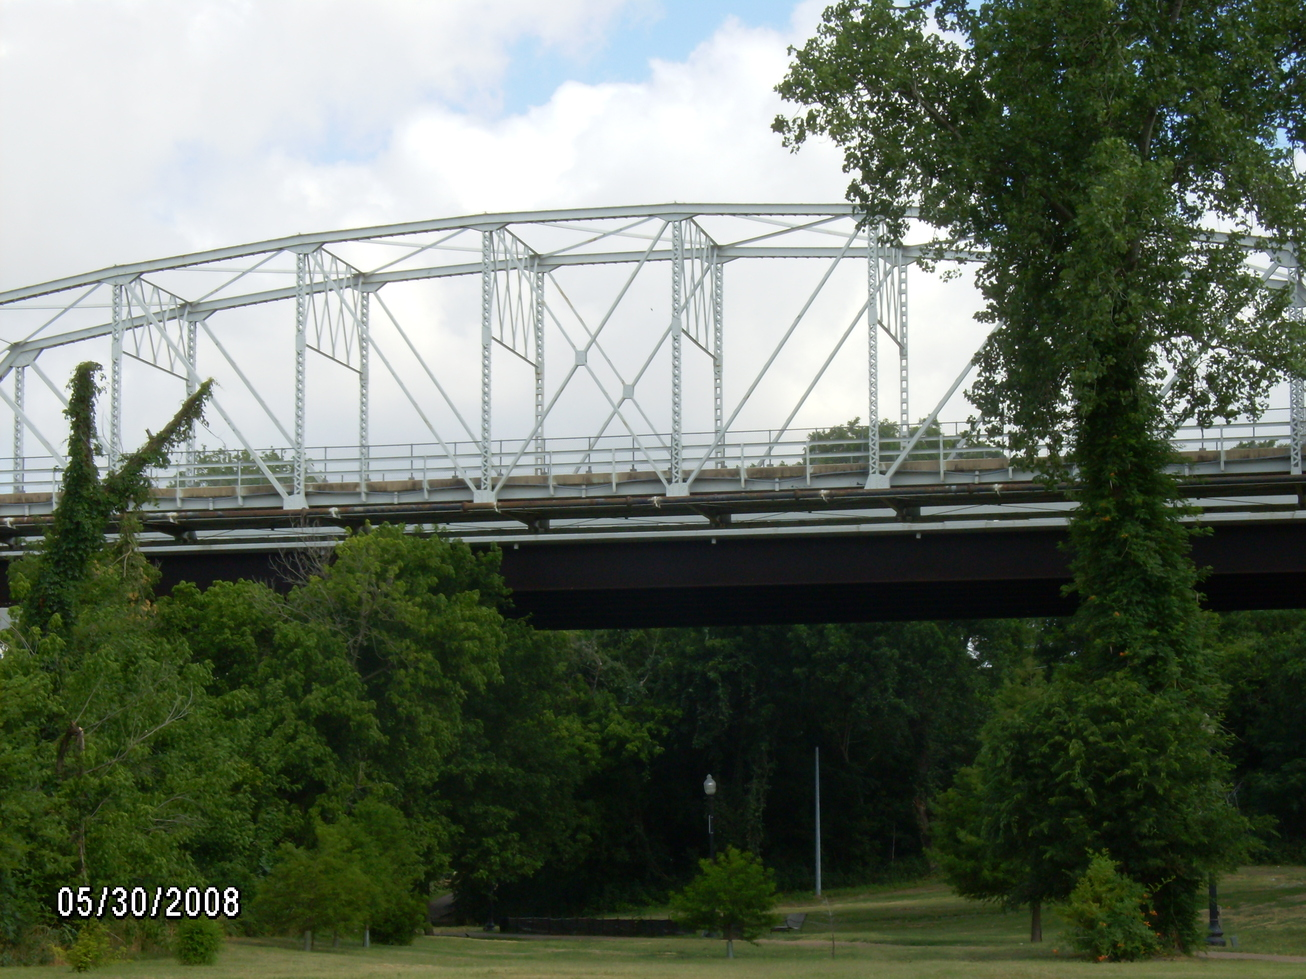 Bastrop, TX : Pedestrian bridge over the Colorado River Bastrop.